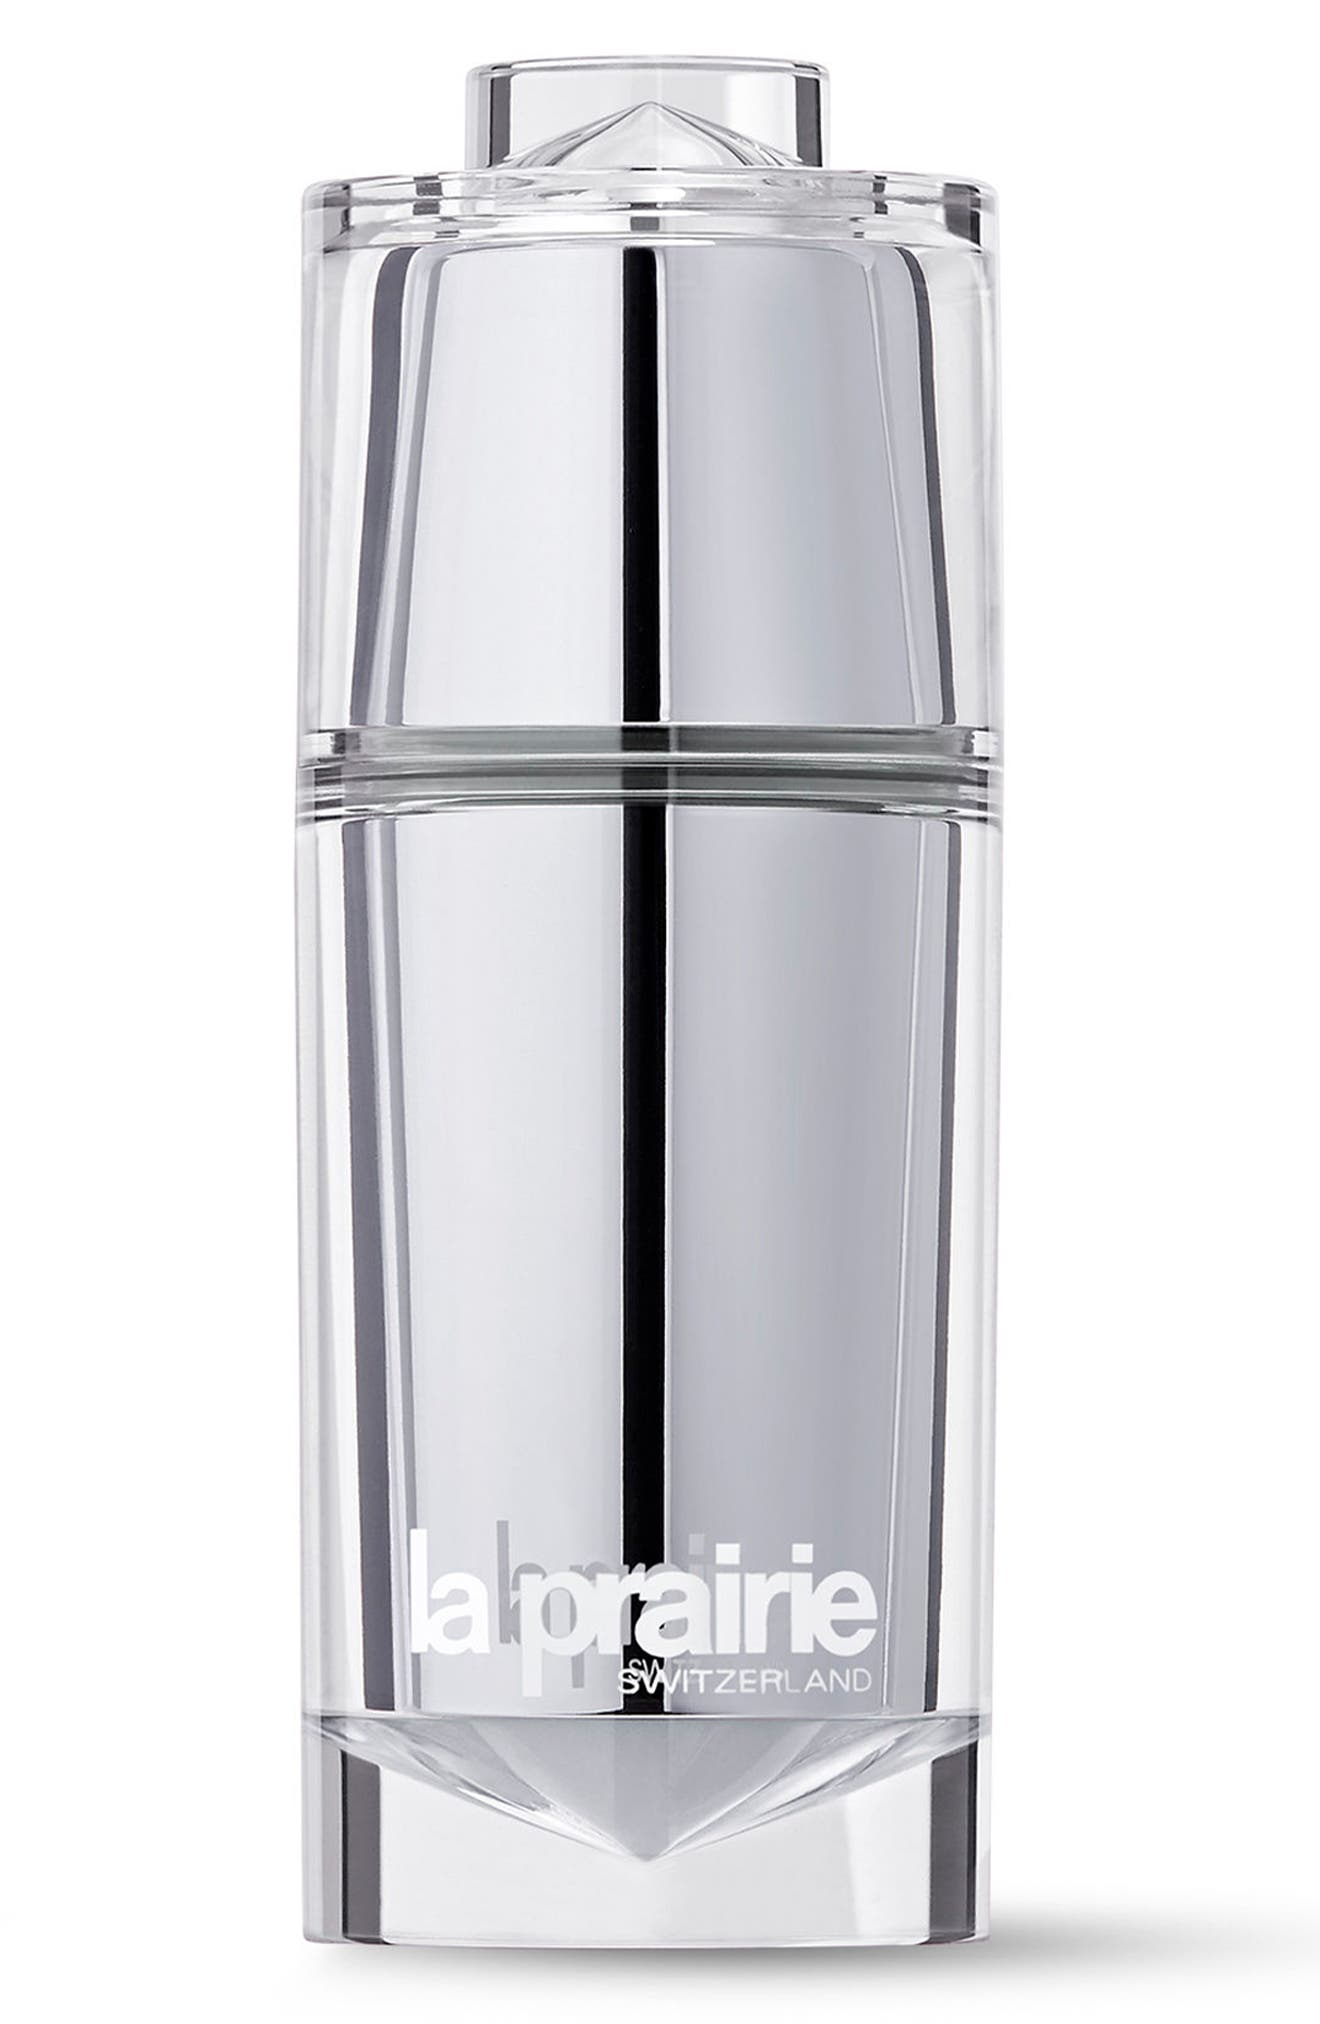 Alternate Image 1 Selected - La Prairie Cellular Eye Essence Platinum Rare